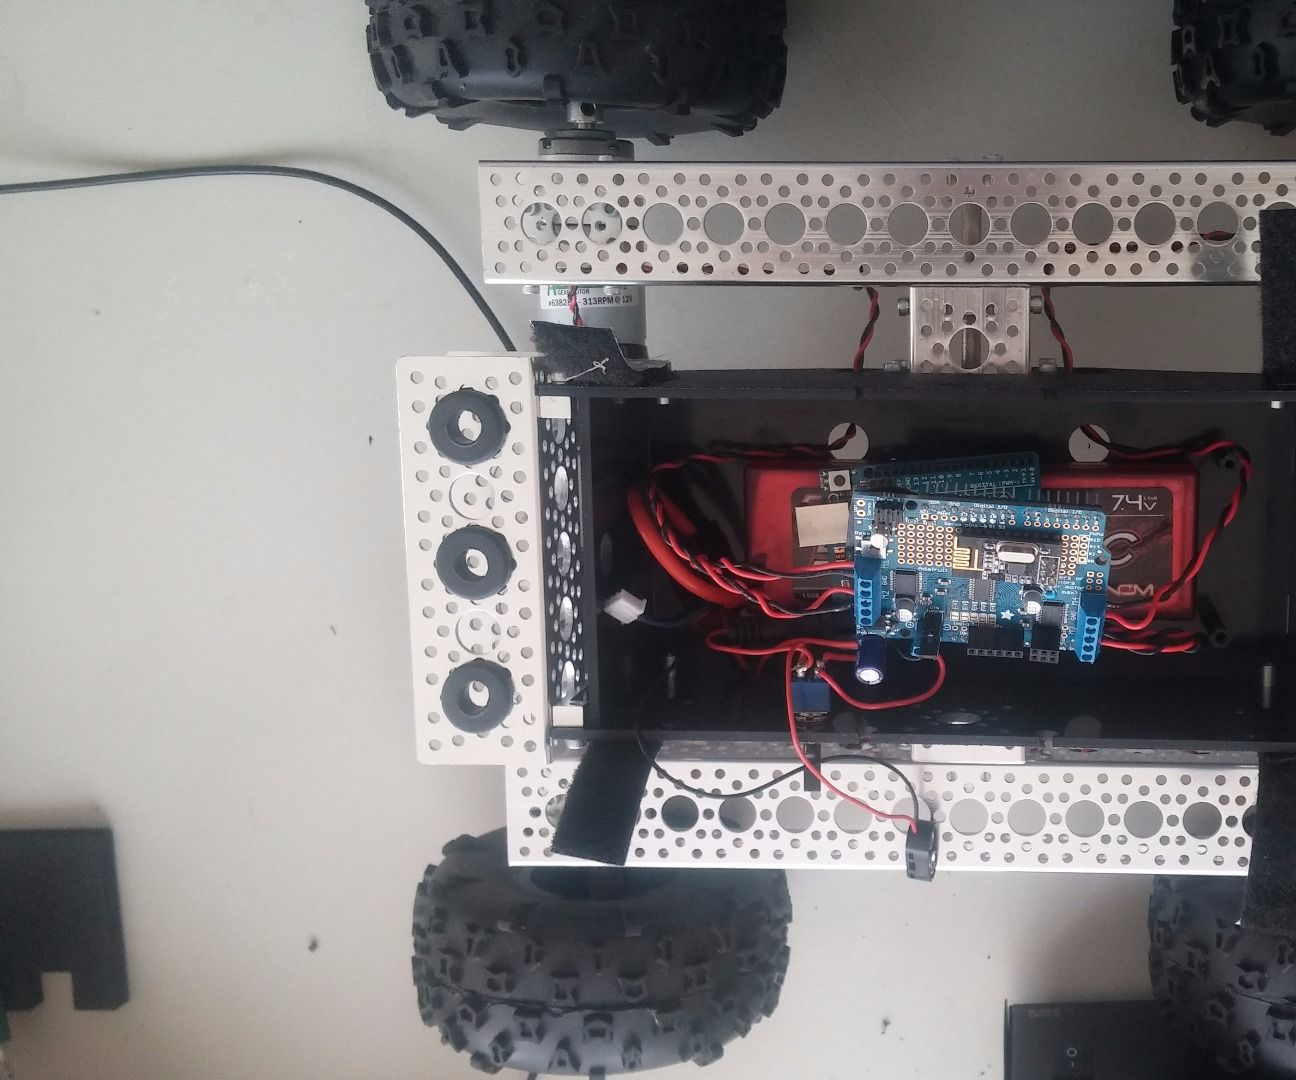 PS3 controlled Nomad 4 wheel drive truck